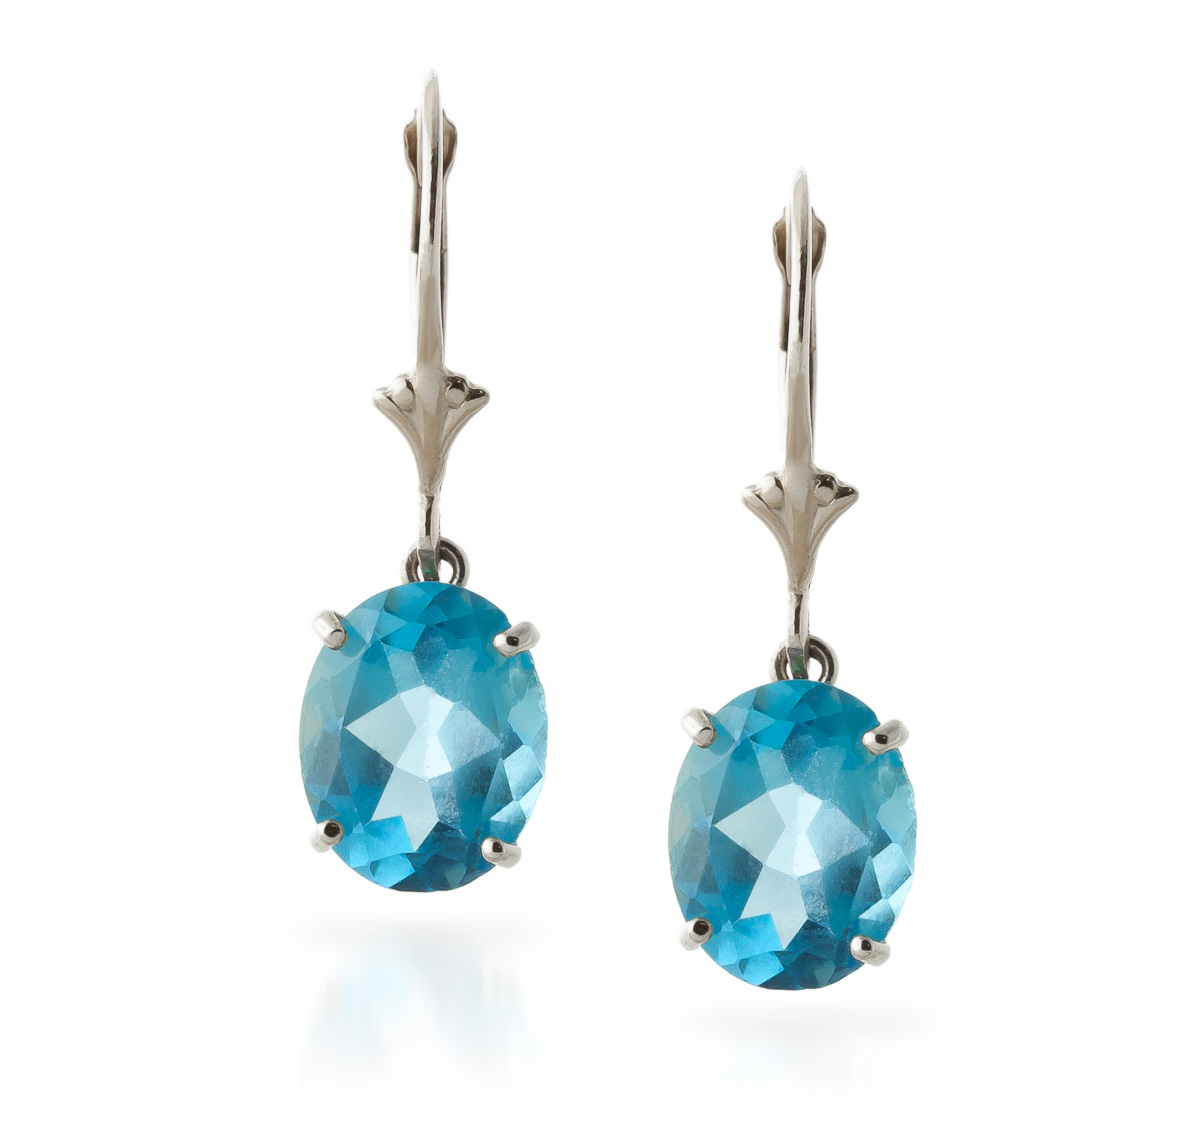 Blue Topaz Drop Earrings 6.25 ctw in 9ct White Gold